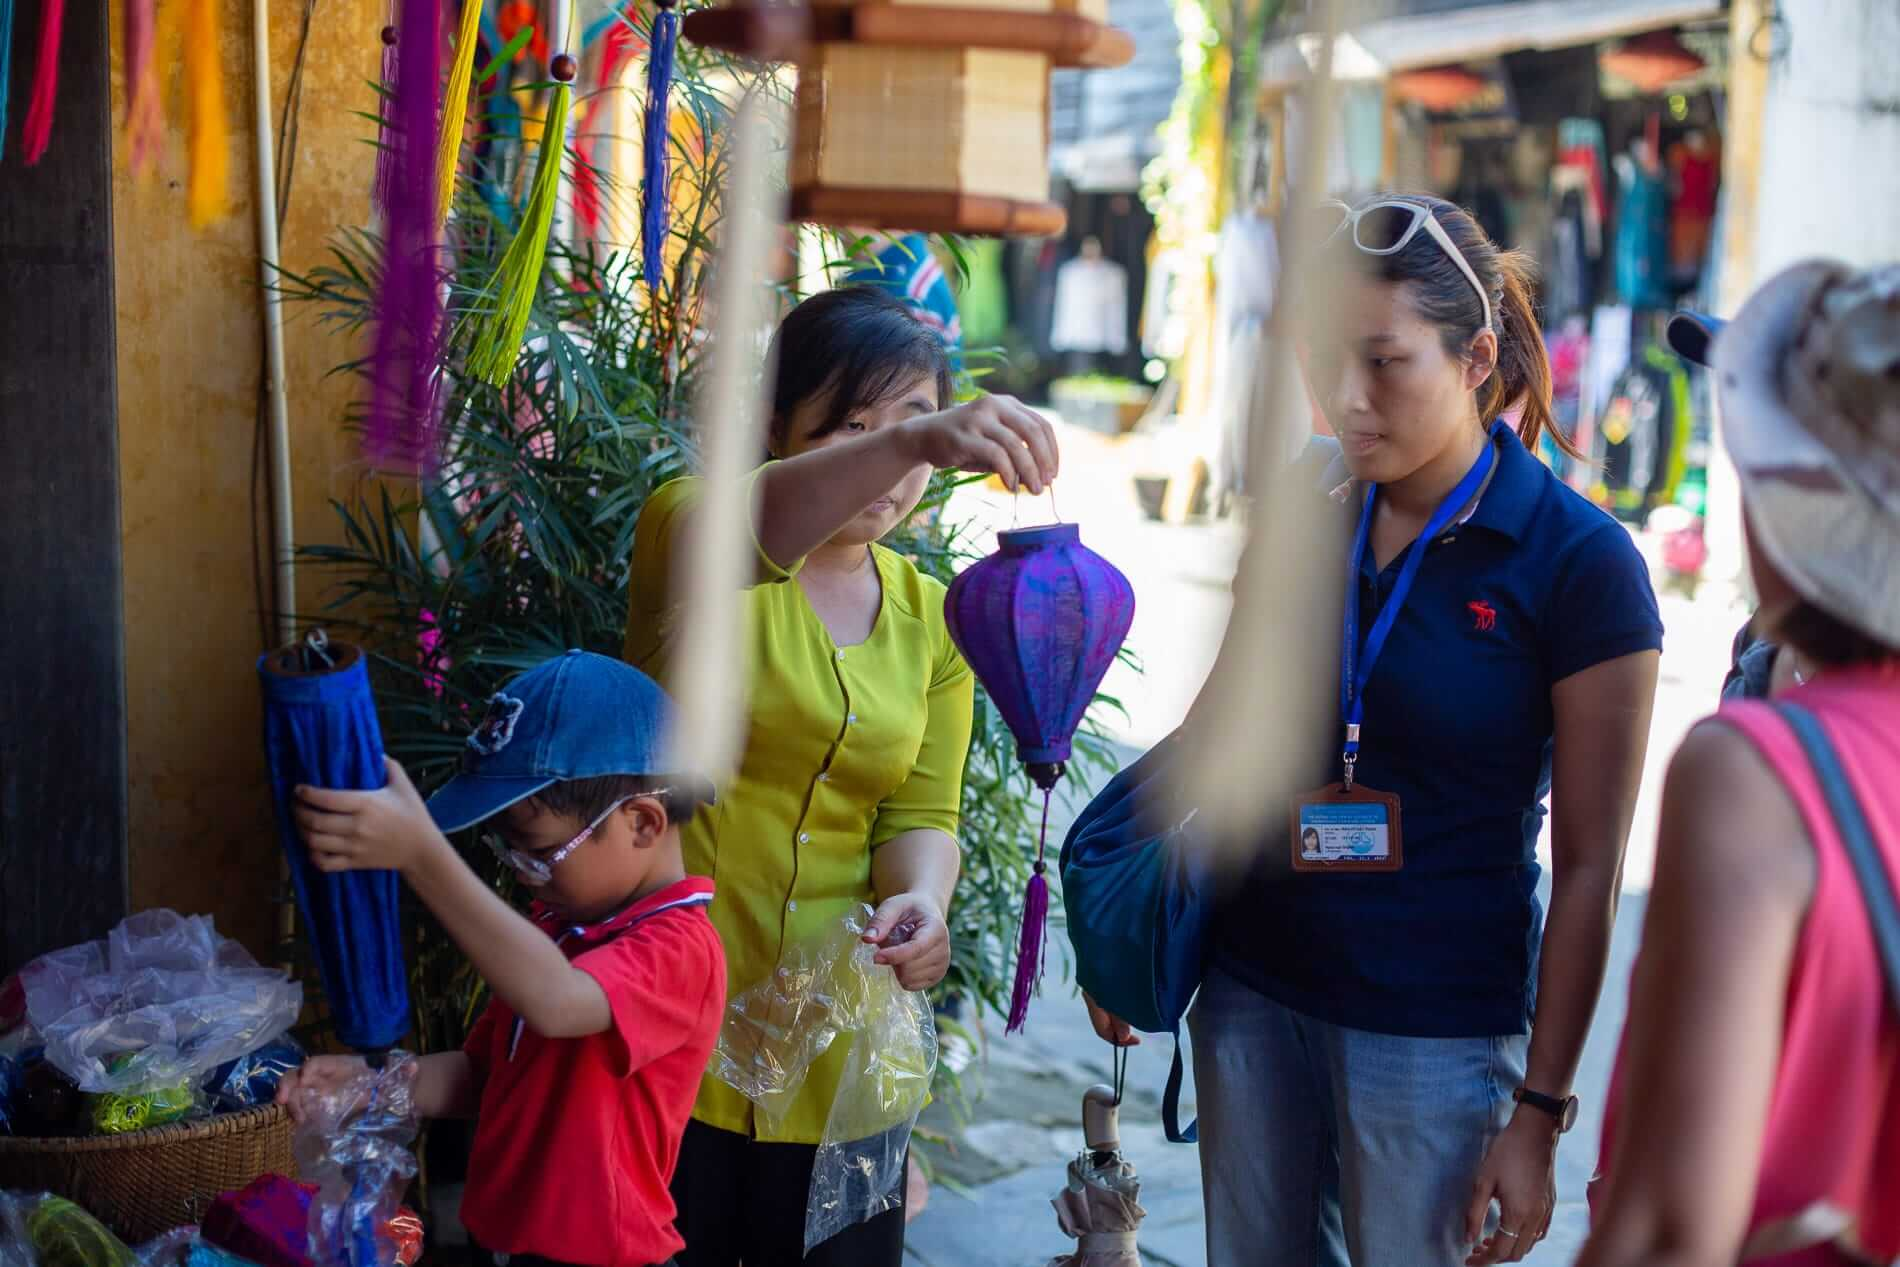 Lantern Shopping - Hoi An Shopping Guide